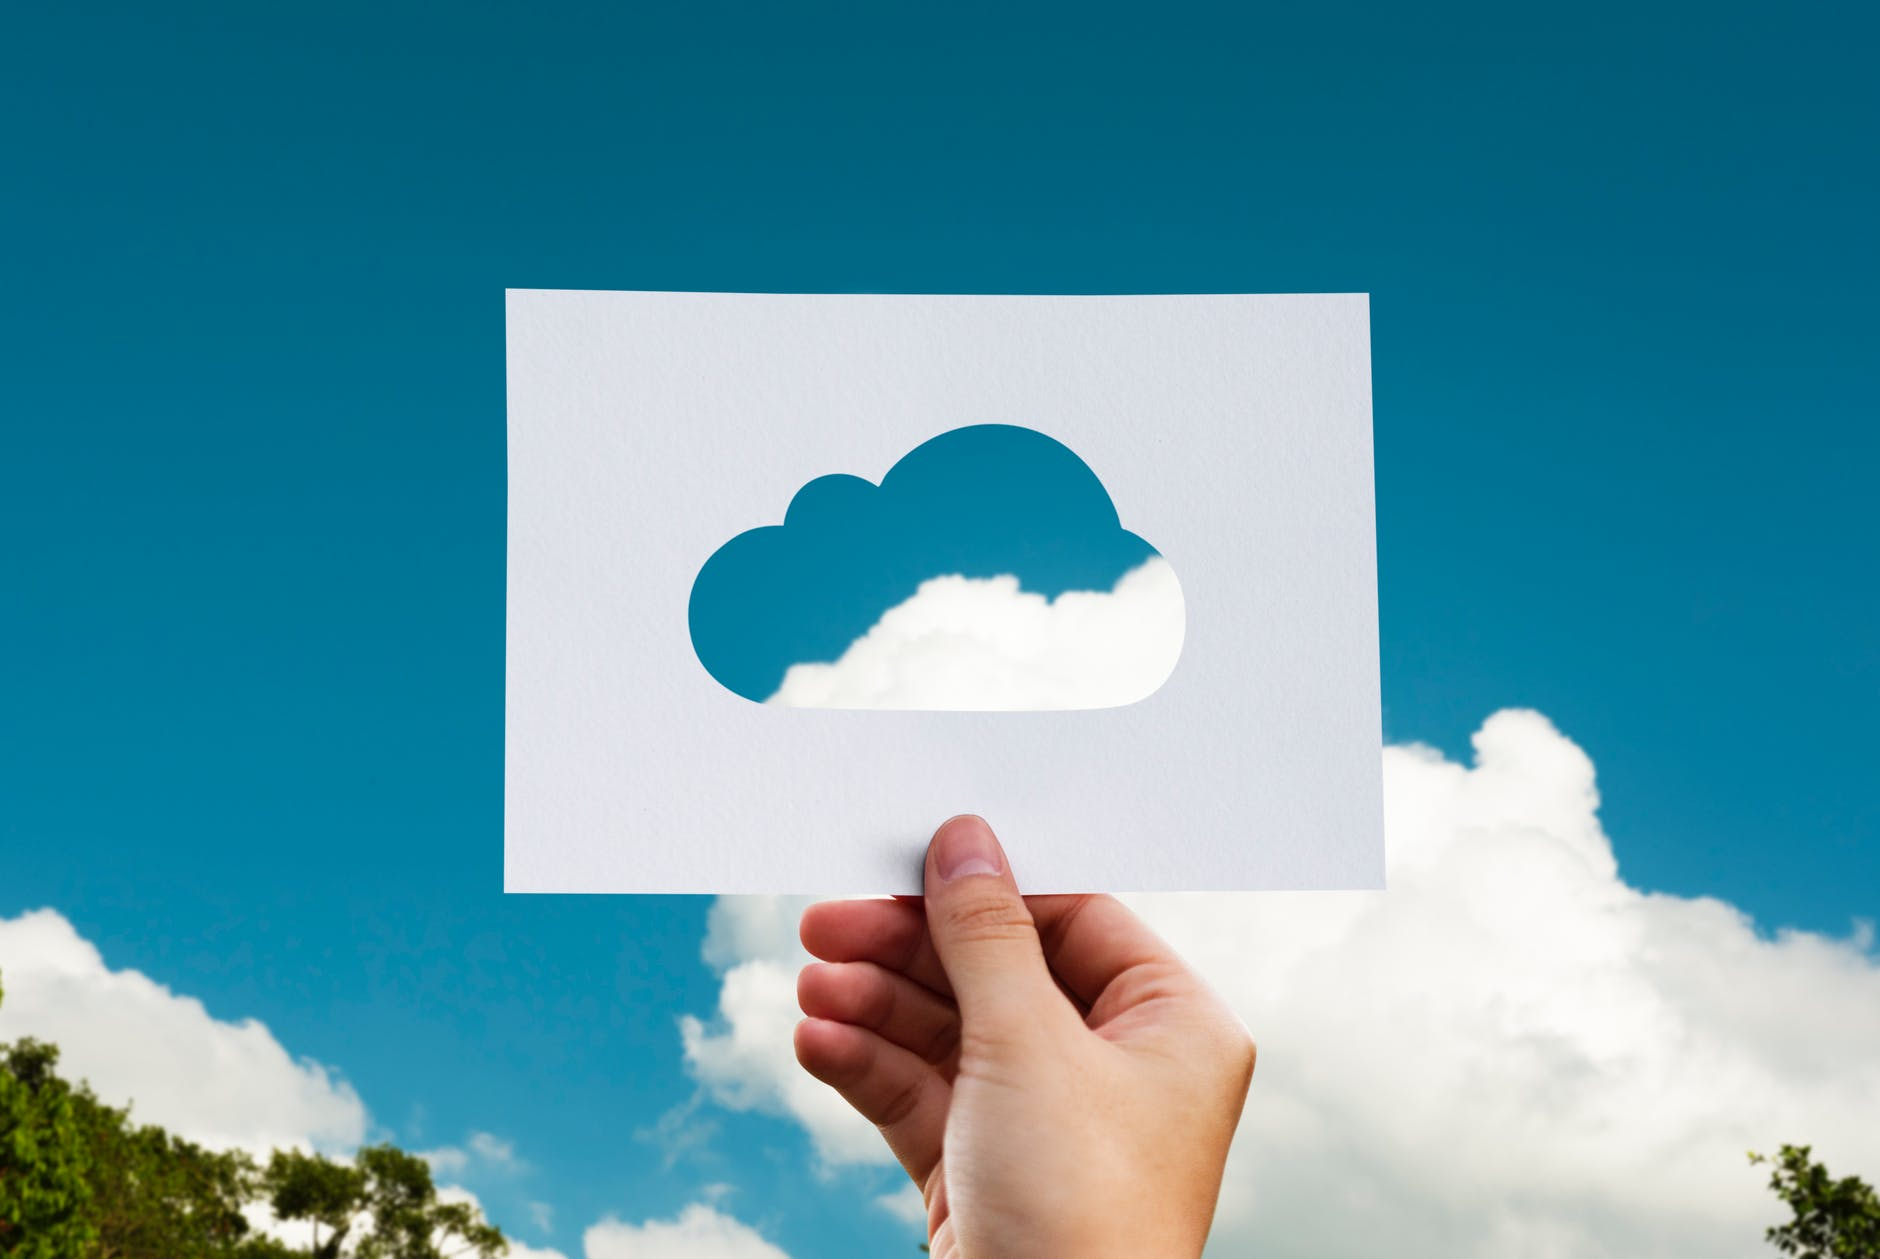 blue skies clouds cut fingers - Leveraging Cloud Technologies in the Oil and Gas Industry